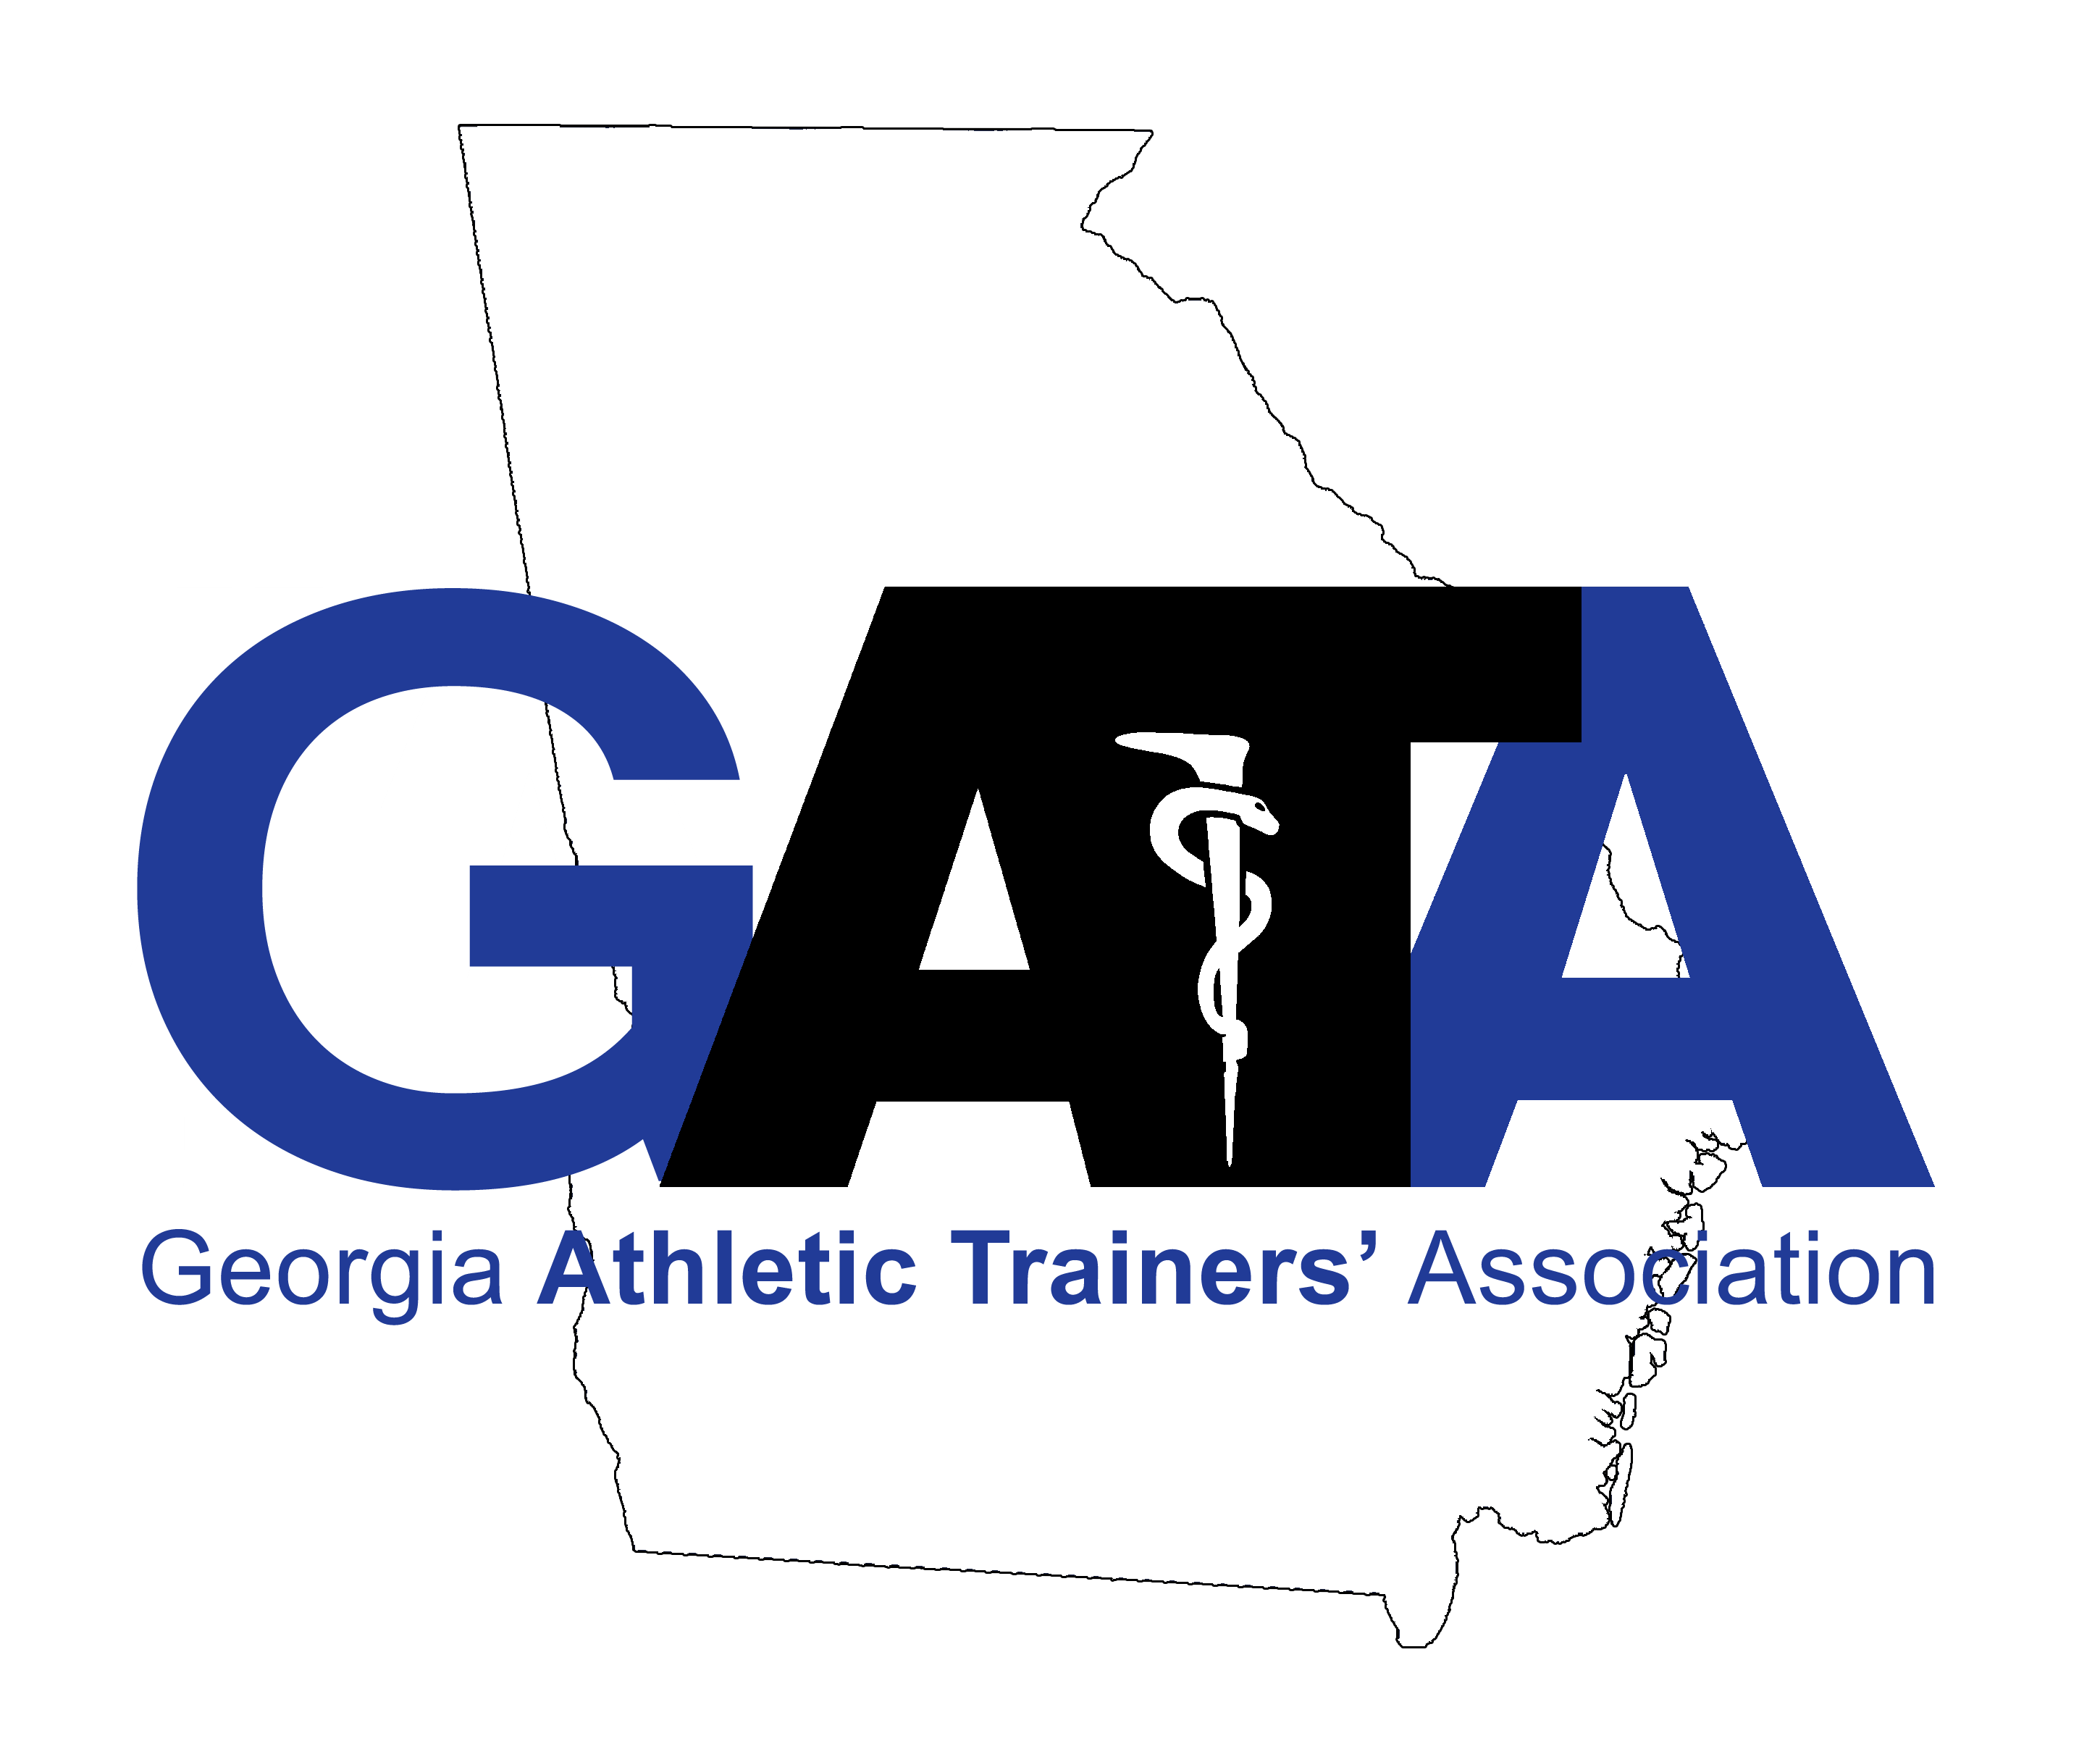 Georgia Athletic Trainers Association Home